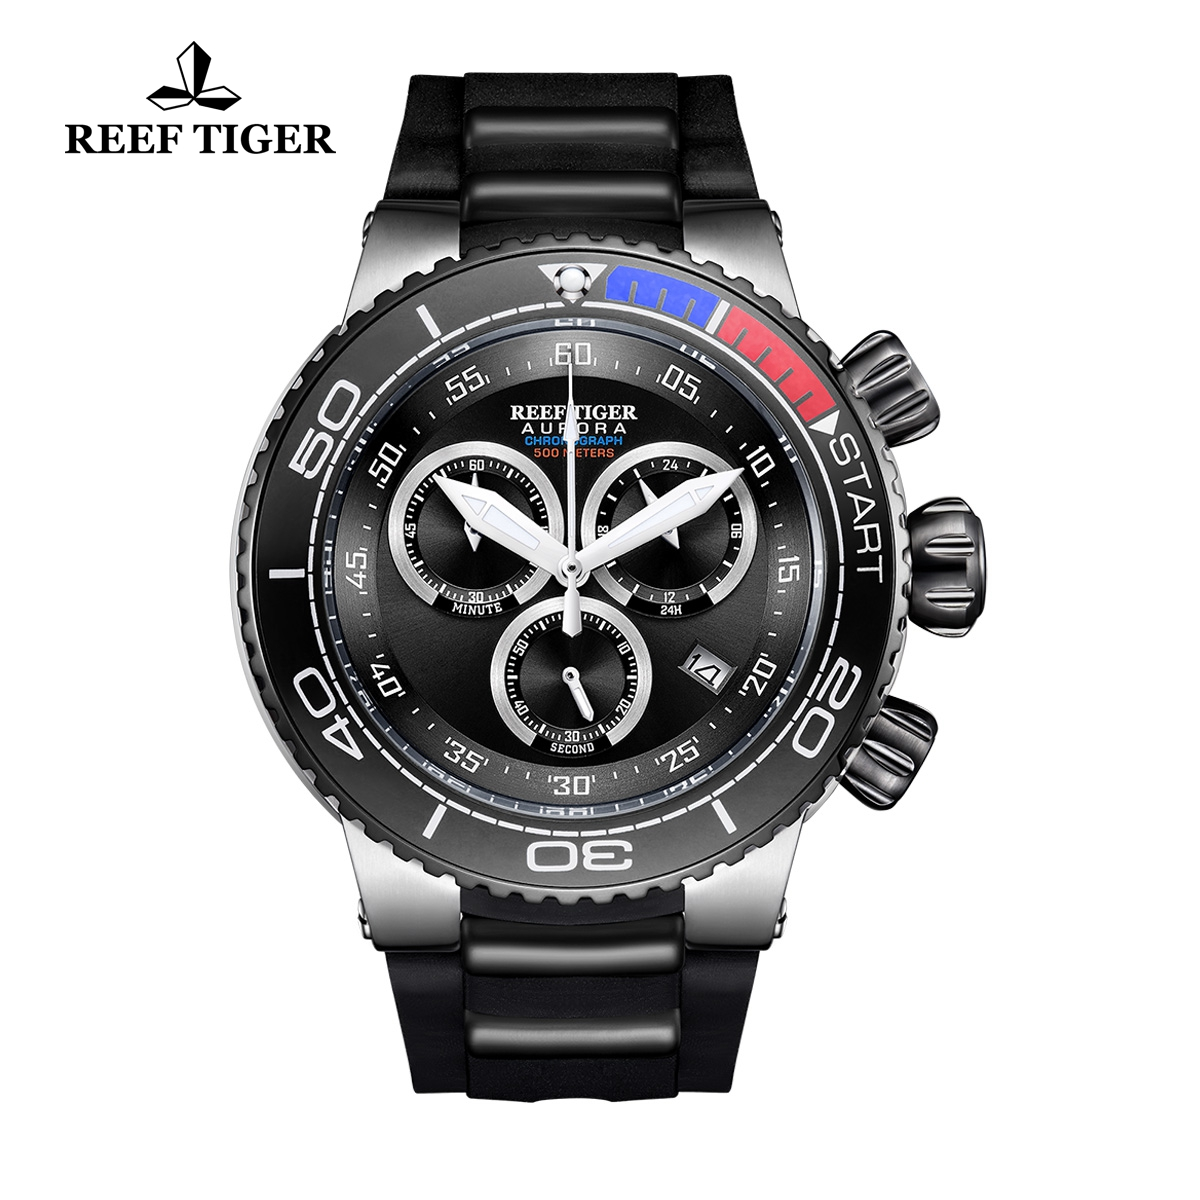 Reef Tiger Aurora Grand Ocean Steel Fashion Watch Rubber Strap Black Dial Chronograph Quartz Watch RGA3168-YBB